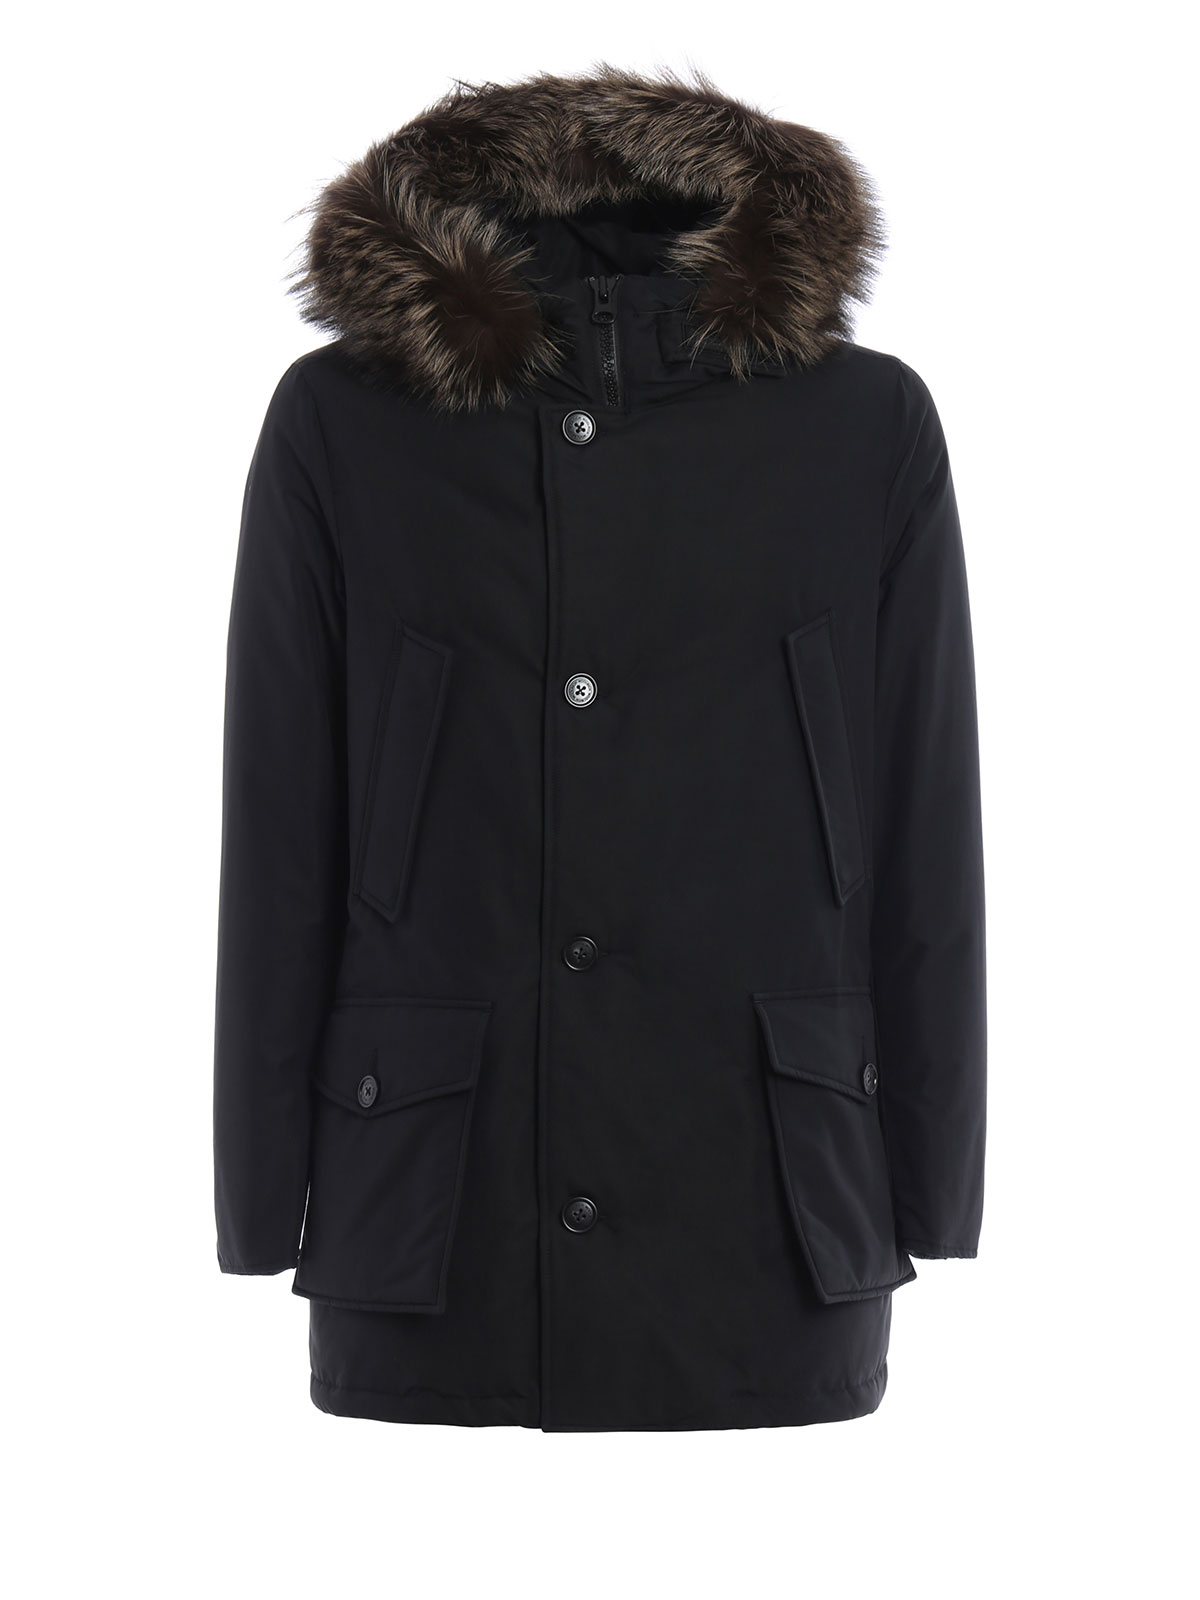 woolrich cotton and nylon military parka parkas. Black Bedroom Furniture Sets. Home Design Ideas